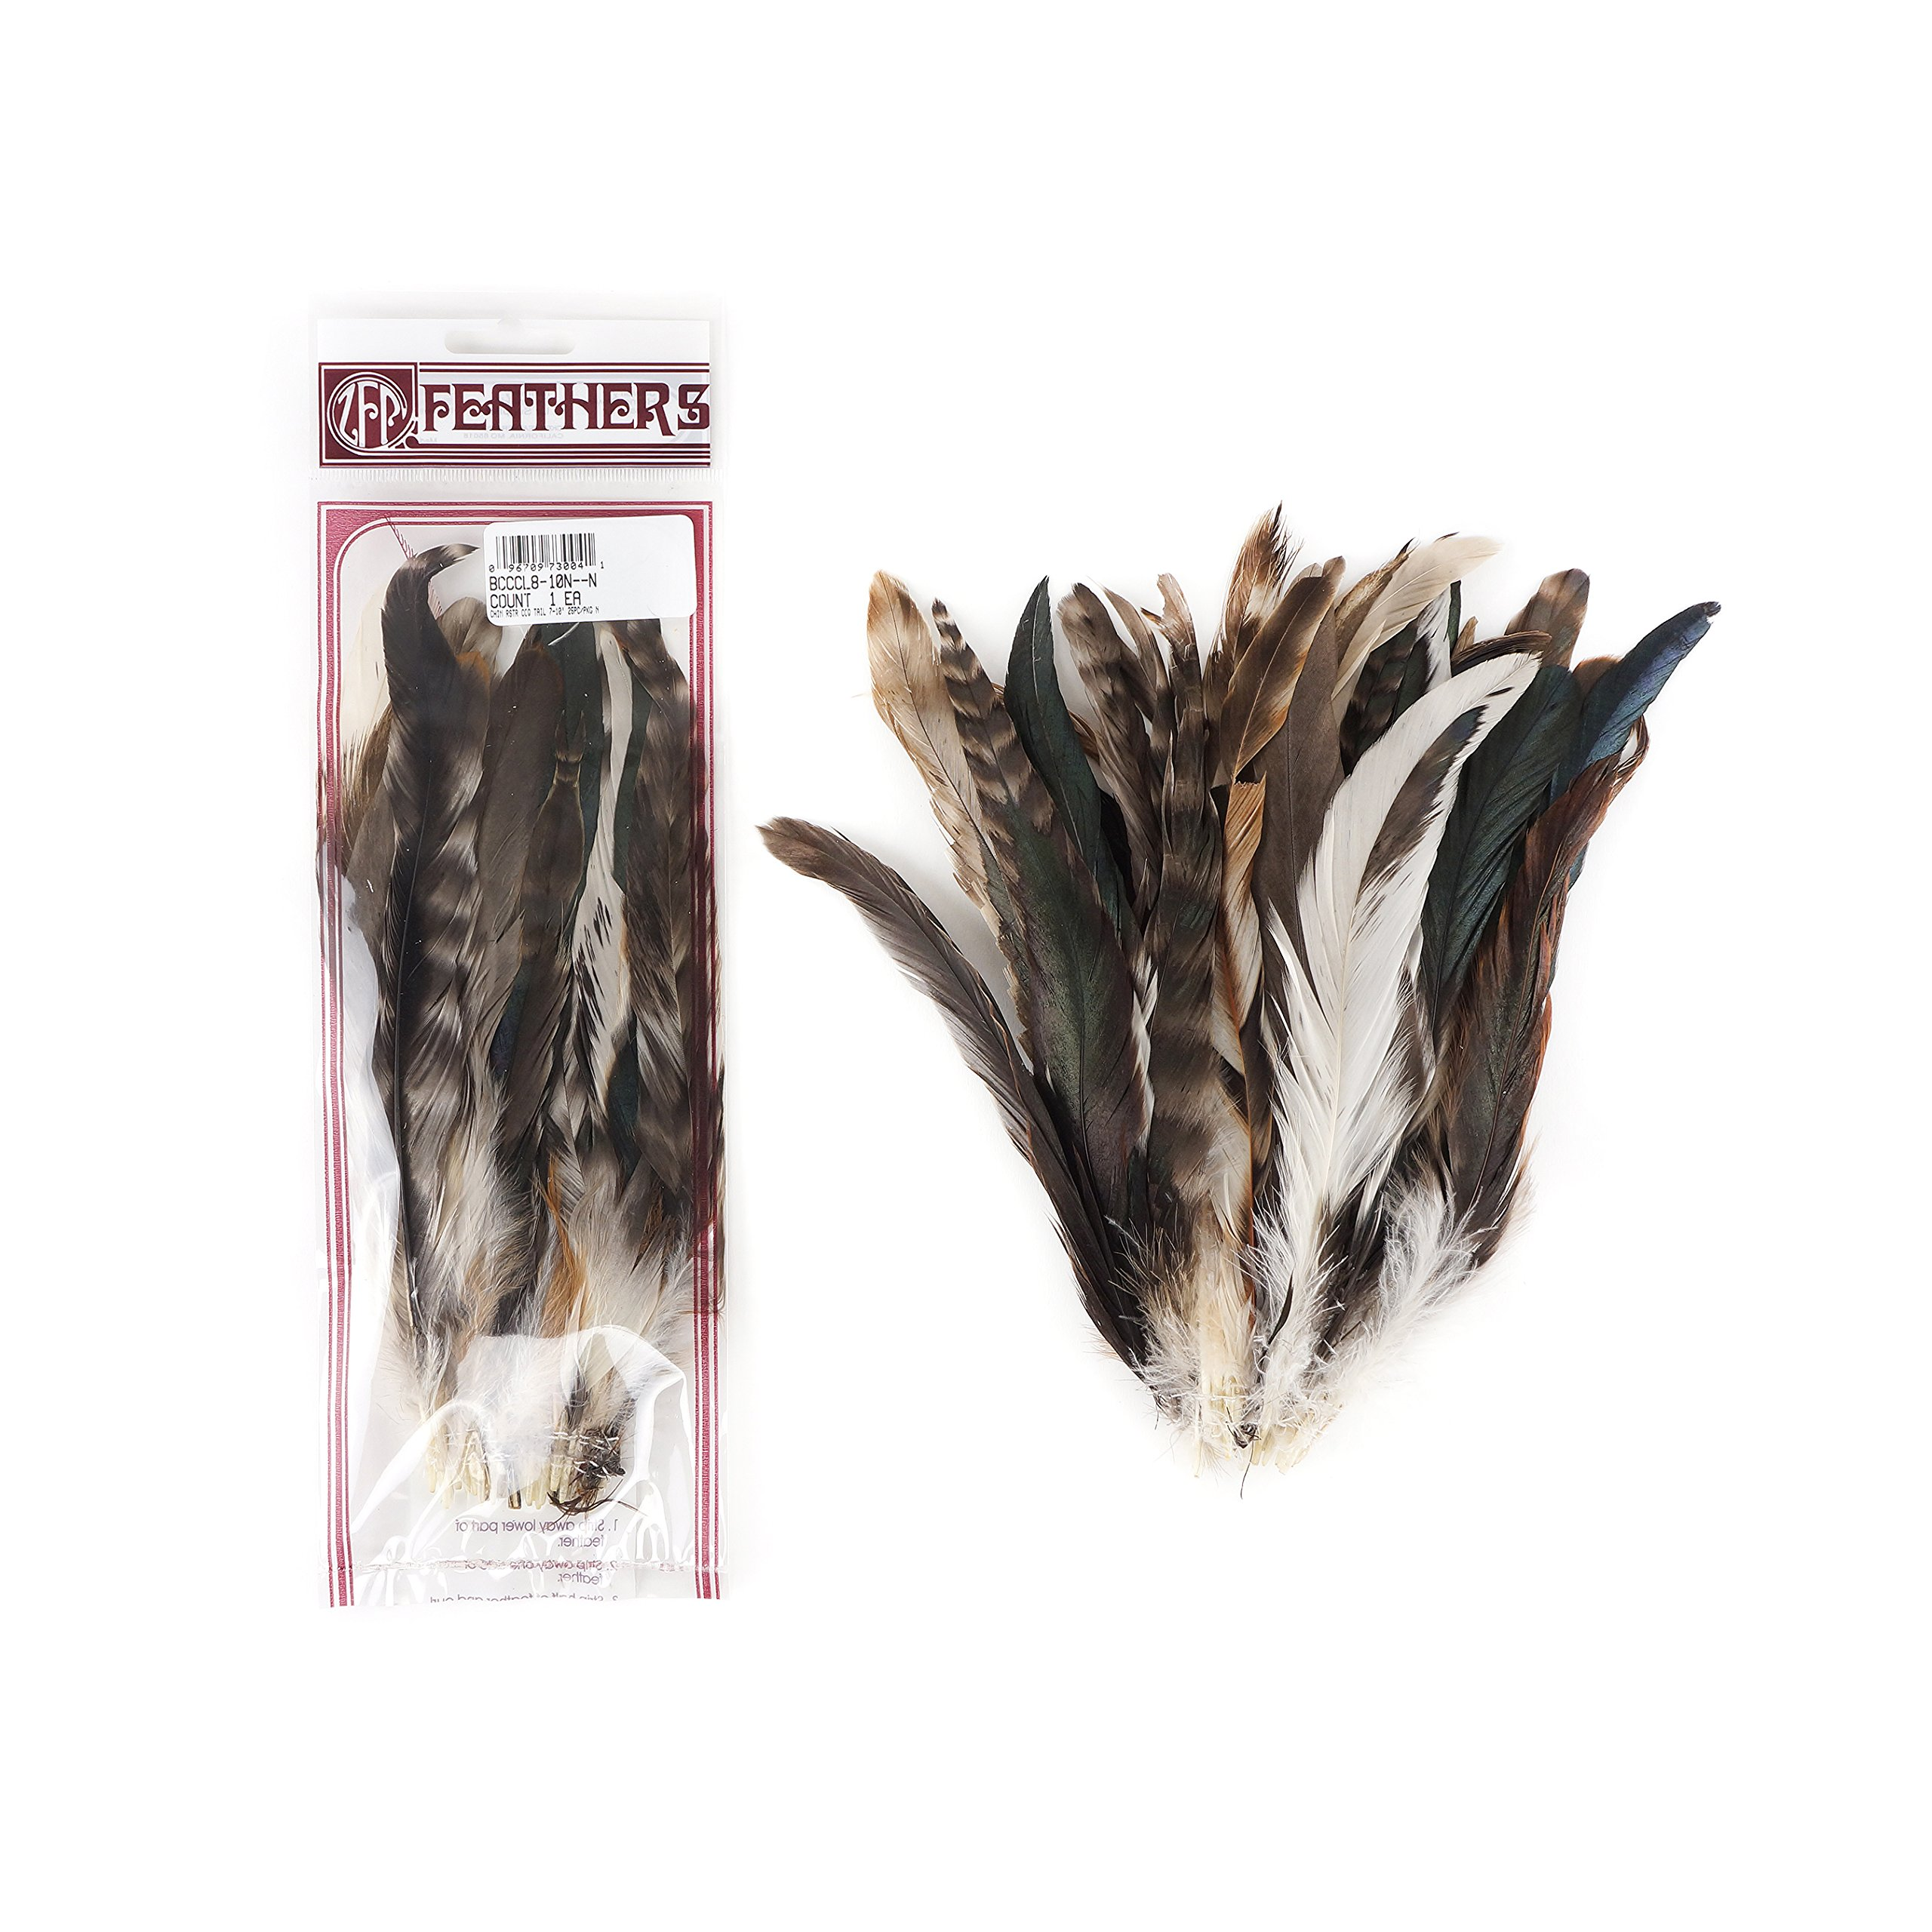 Zucker Feather (TM) - Rooster Coque Tails-Chinchilla Natural